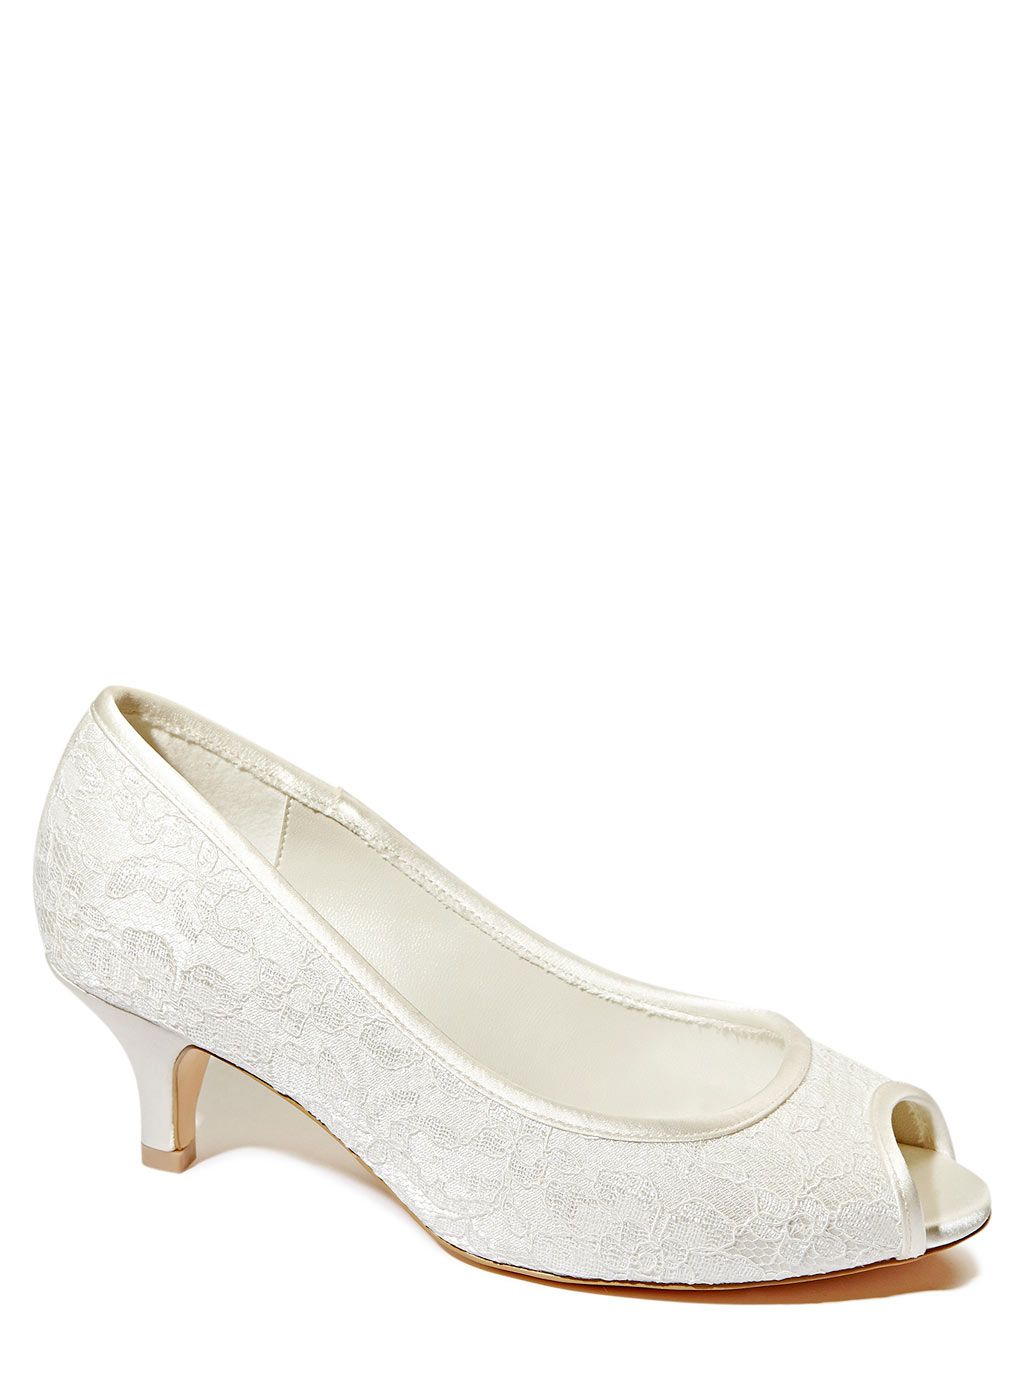 Photo 1 Of Ivory Wedding Collection Wide Fit Lace Peep Toe Court Shoes